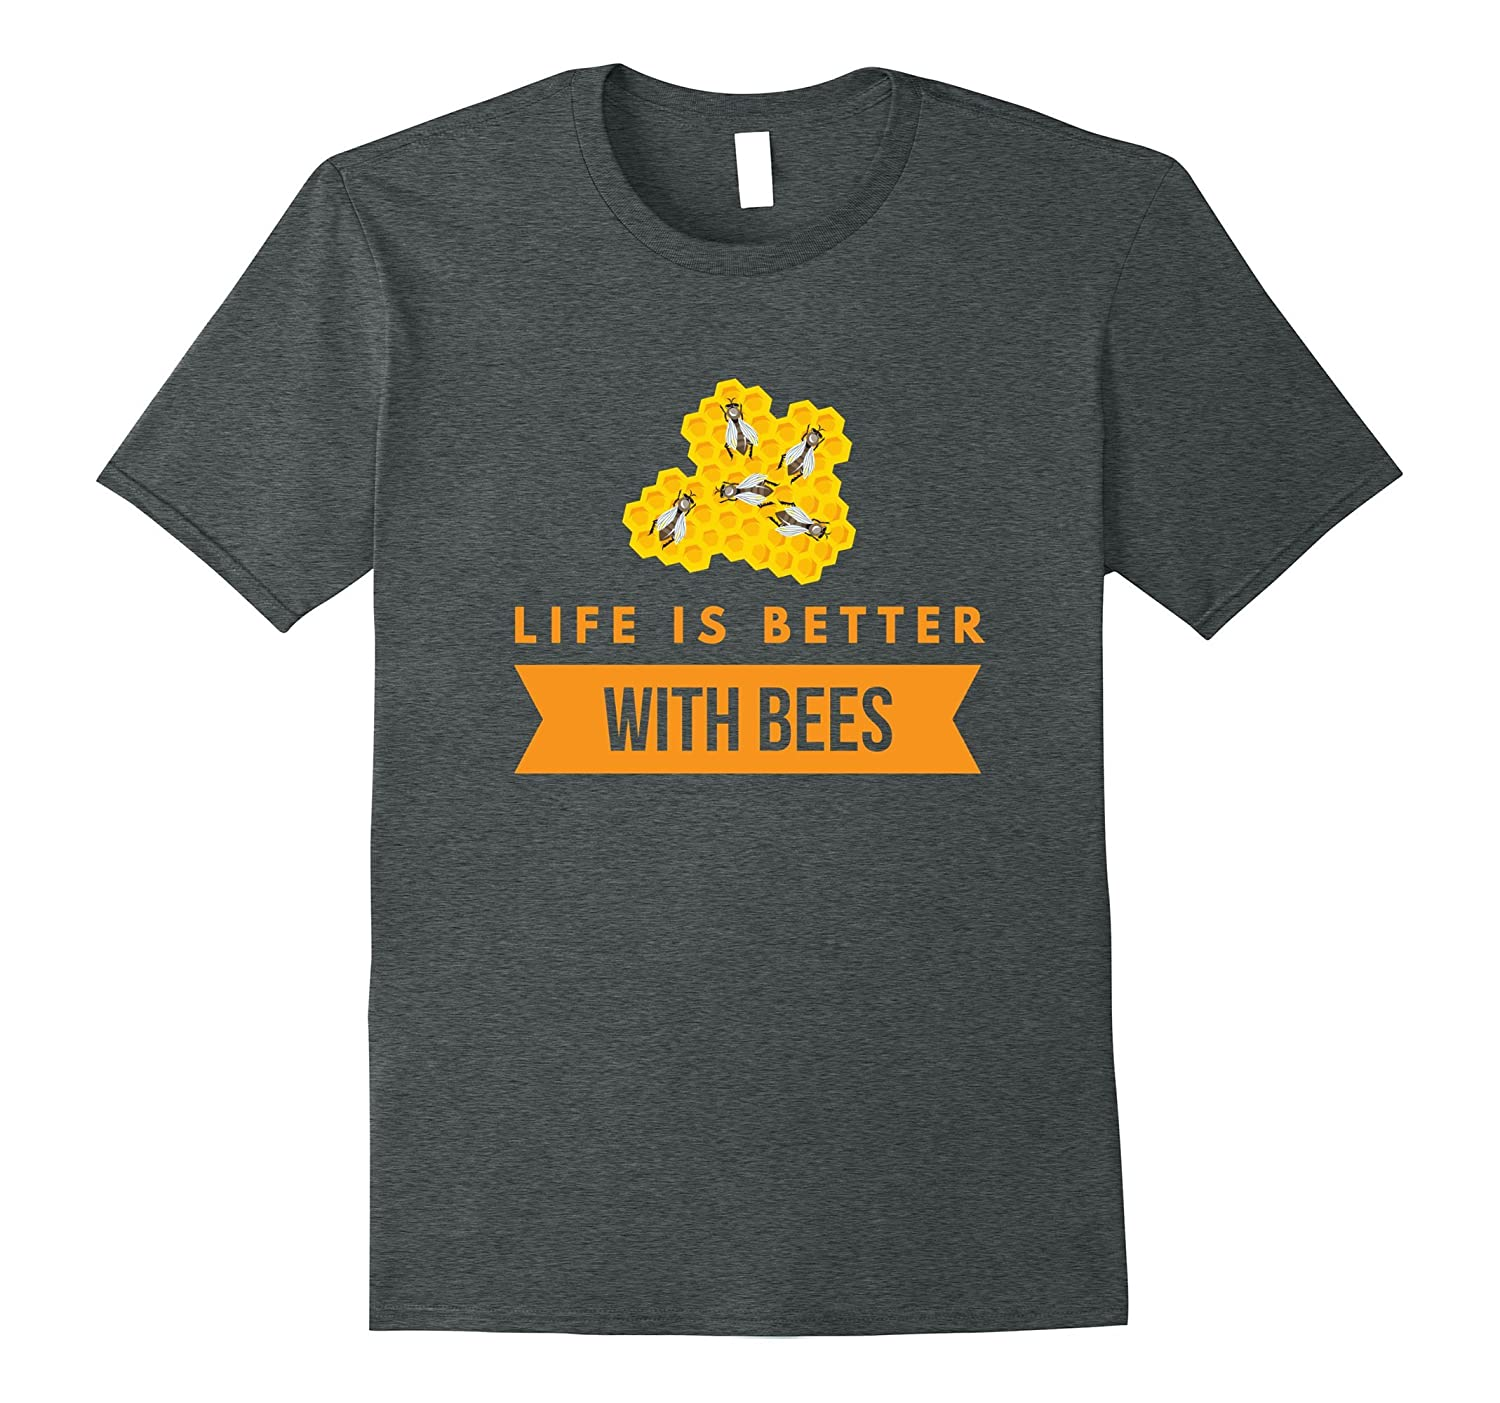 Life is better with bees beekeeping funny gift t-shirt